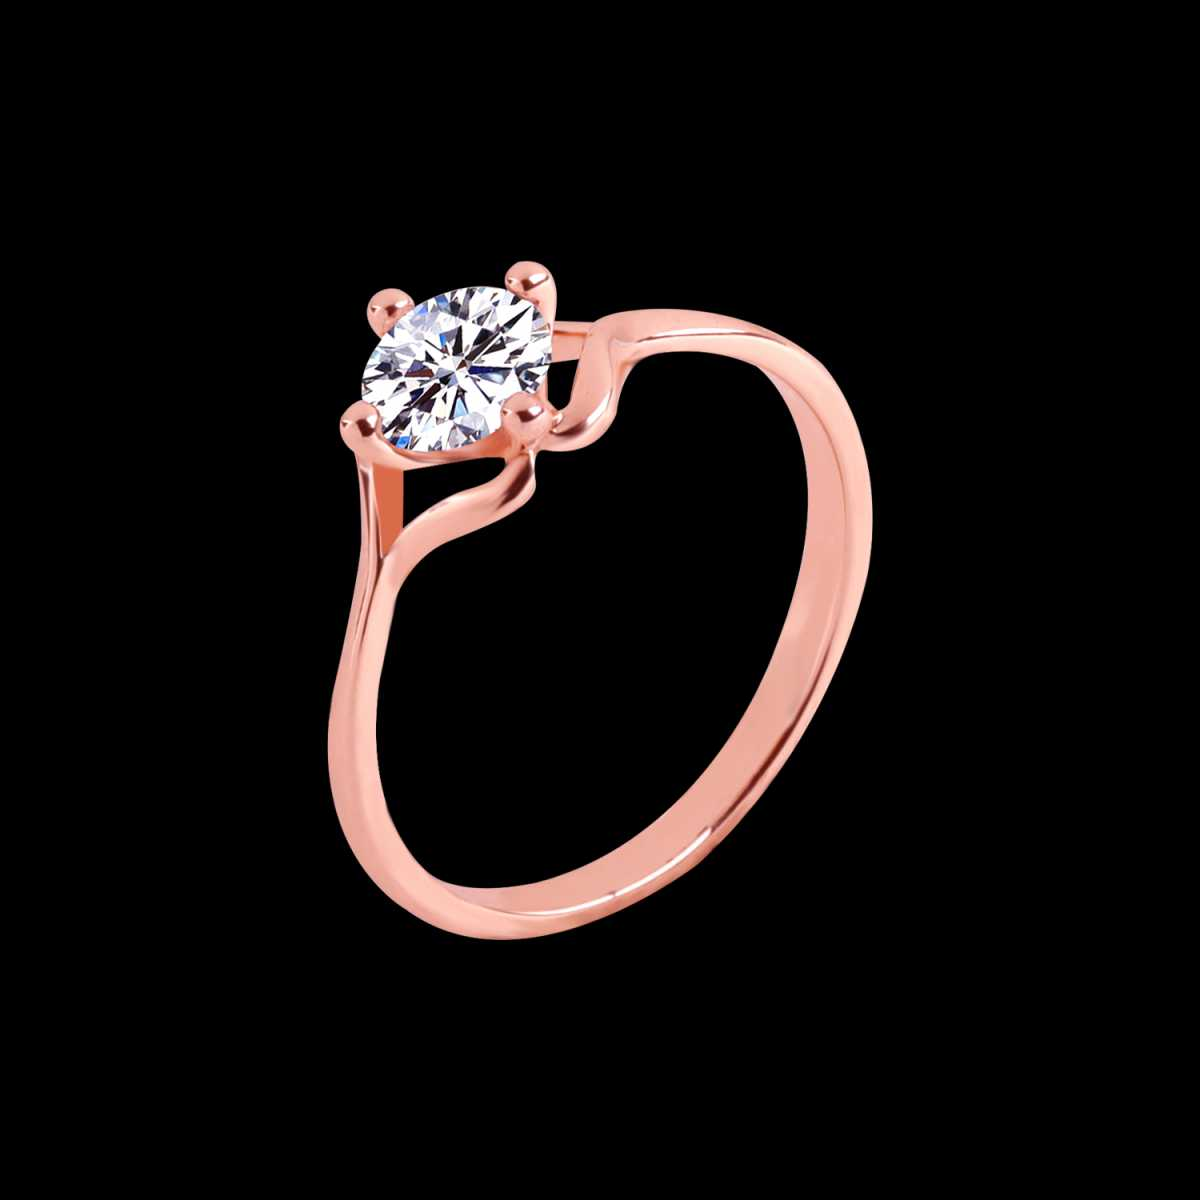 Silver Shine Rose Gold Plated Elegant Classic Crystal Leaf Solitaire Ring for Girls and women,wedding ring,jewelry,diamonds,fashion jewelry,couple rings.